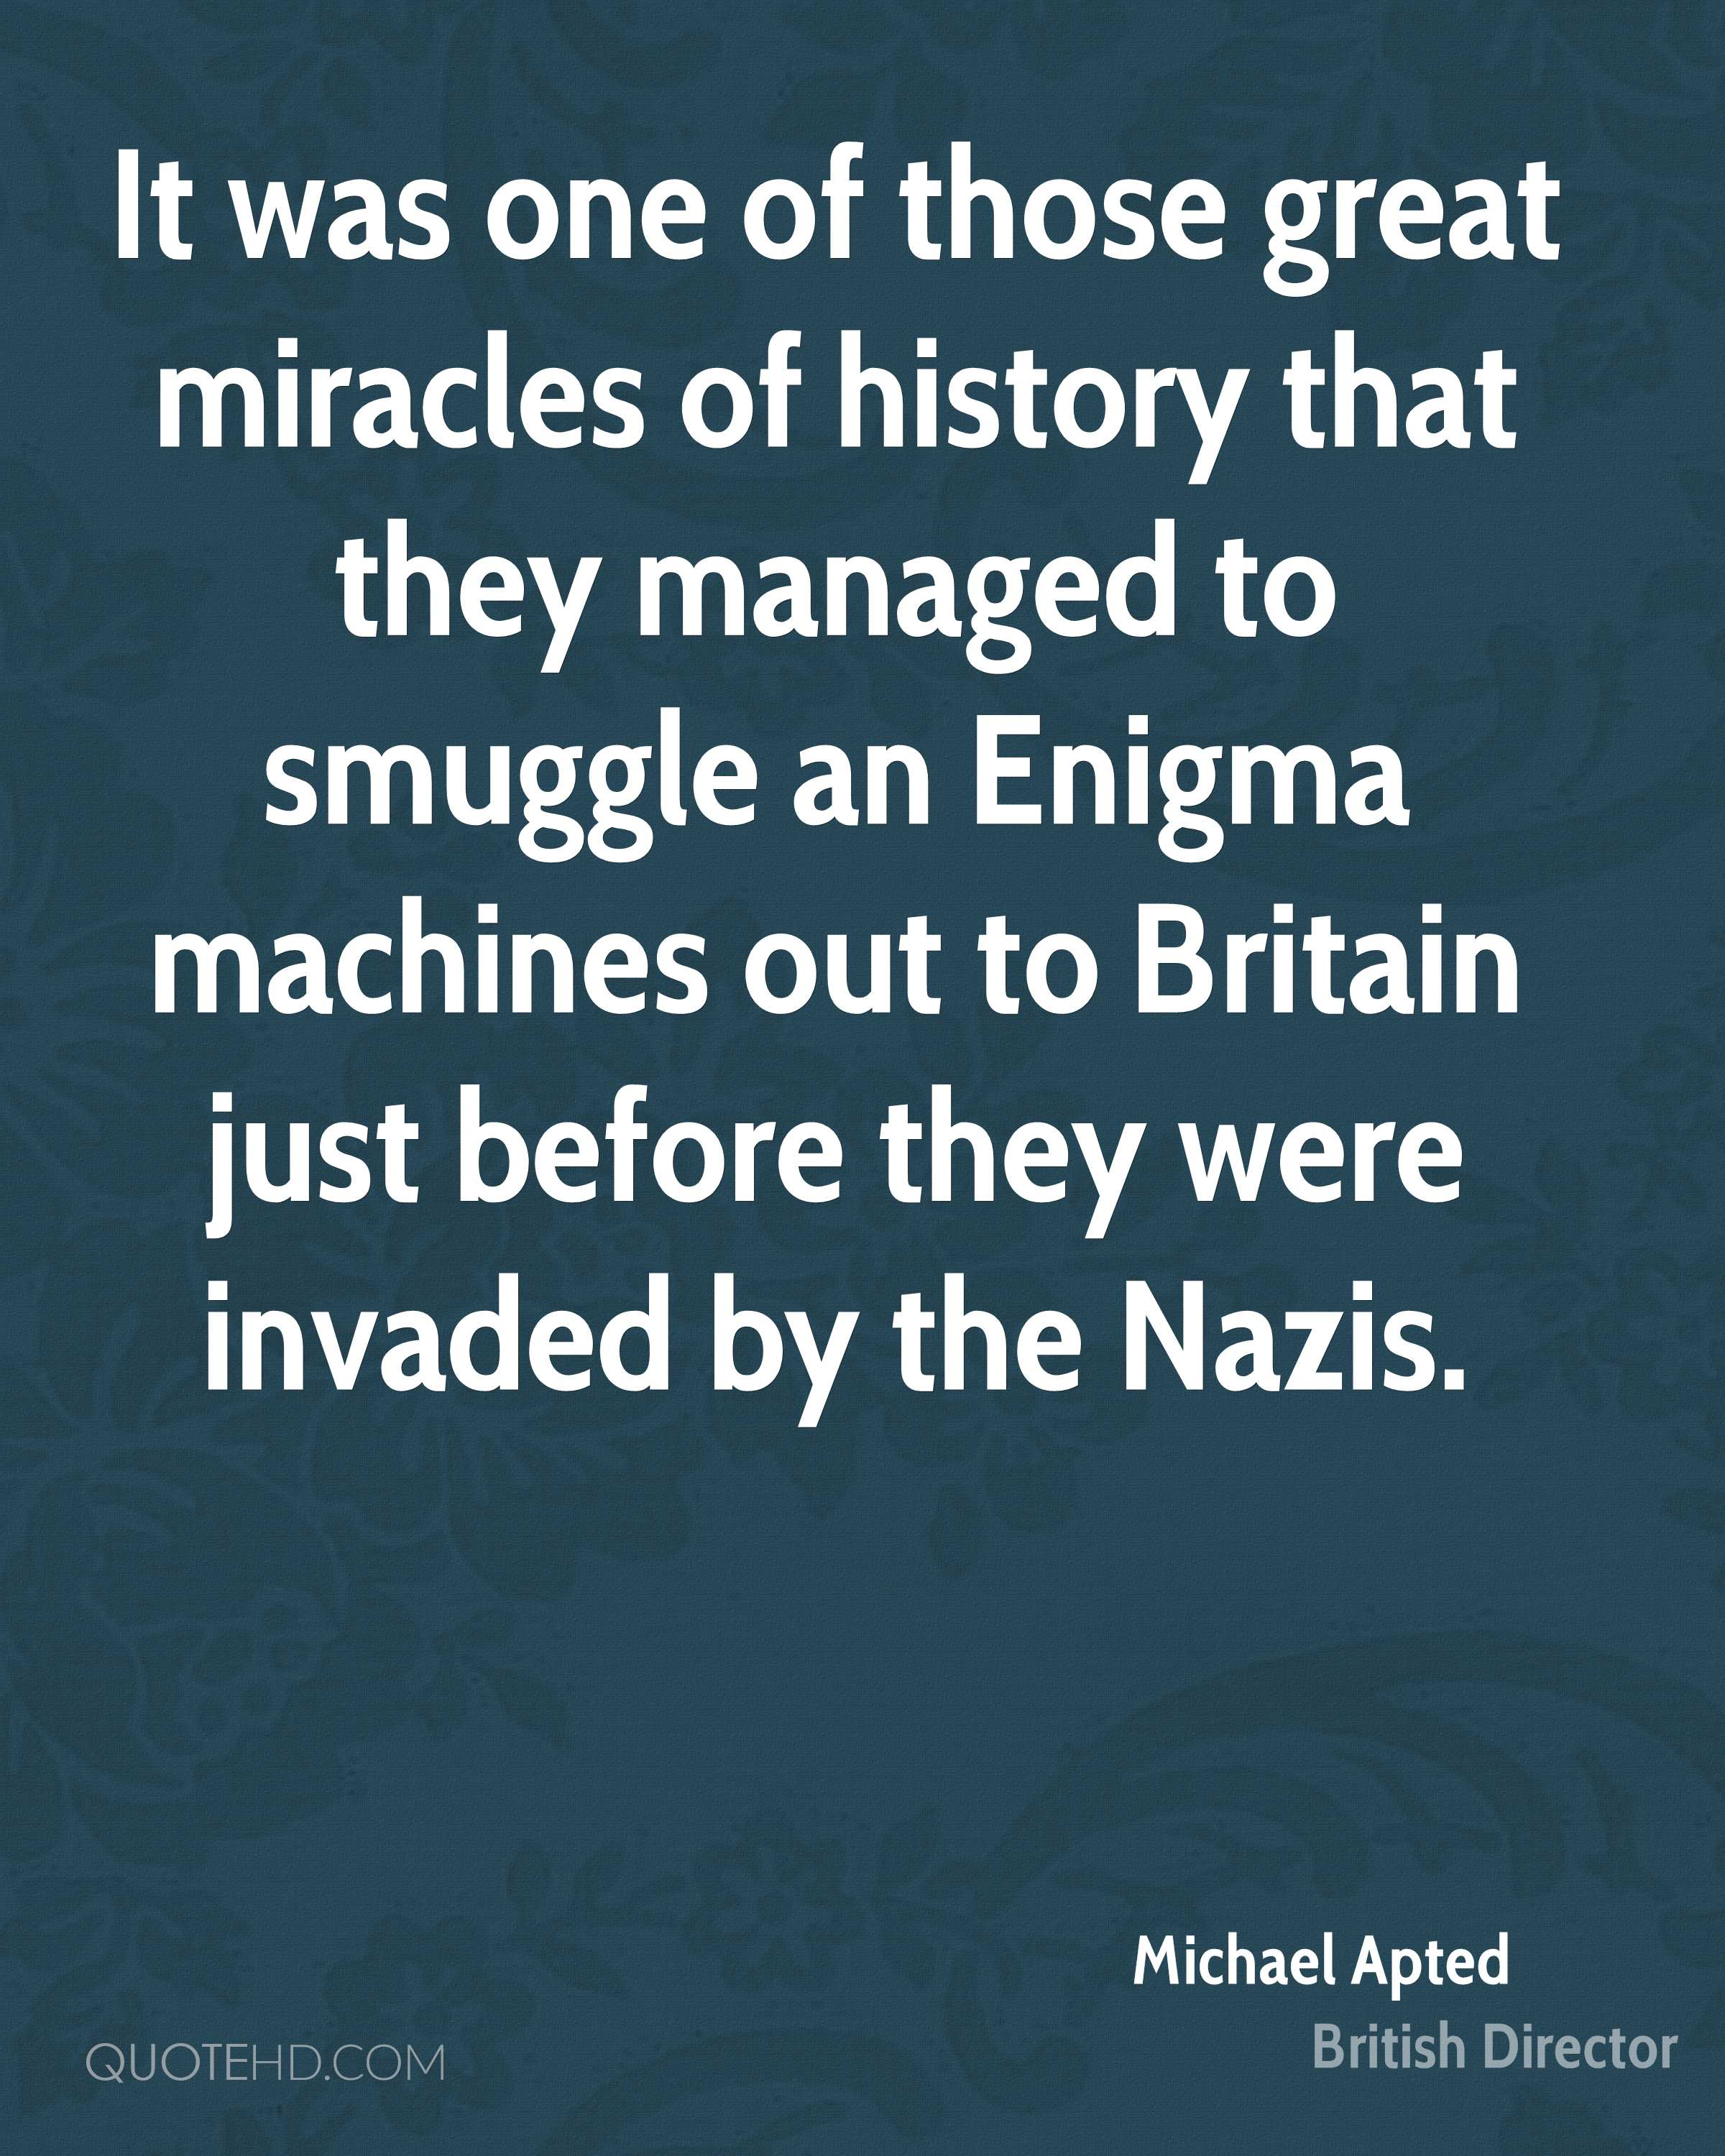 It was one of those great miracles of history that they managed to smuggle an Enigma machines out to Britain just before they were invaded by the Nazis.